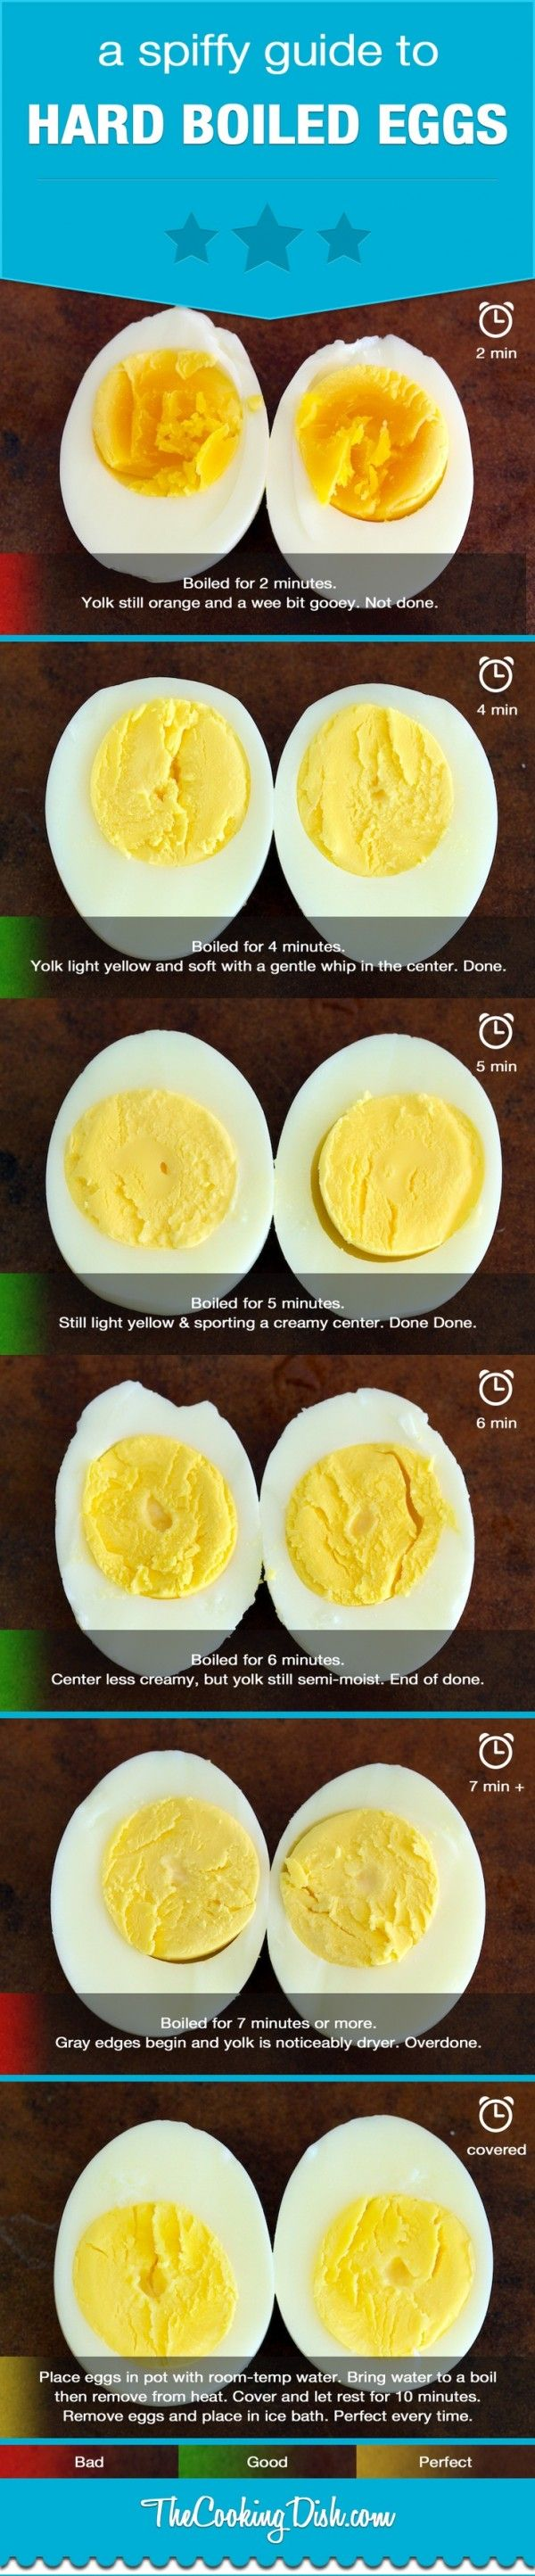 A Spiffy Guide to Hard-Boiled Eggs